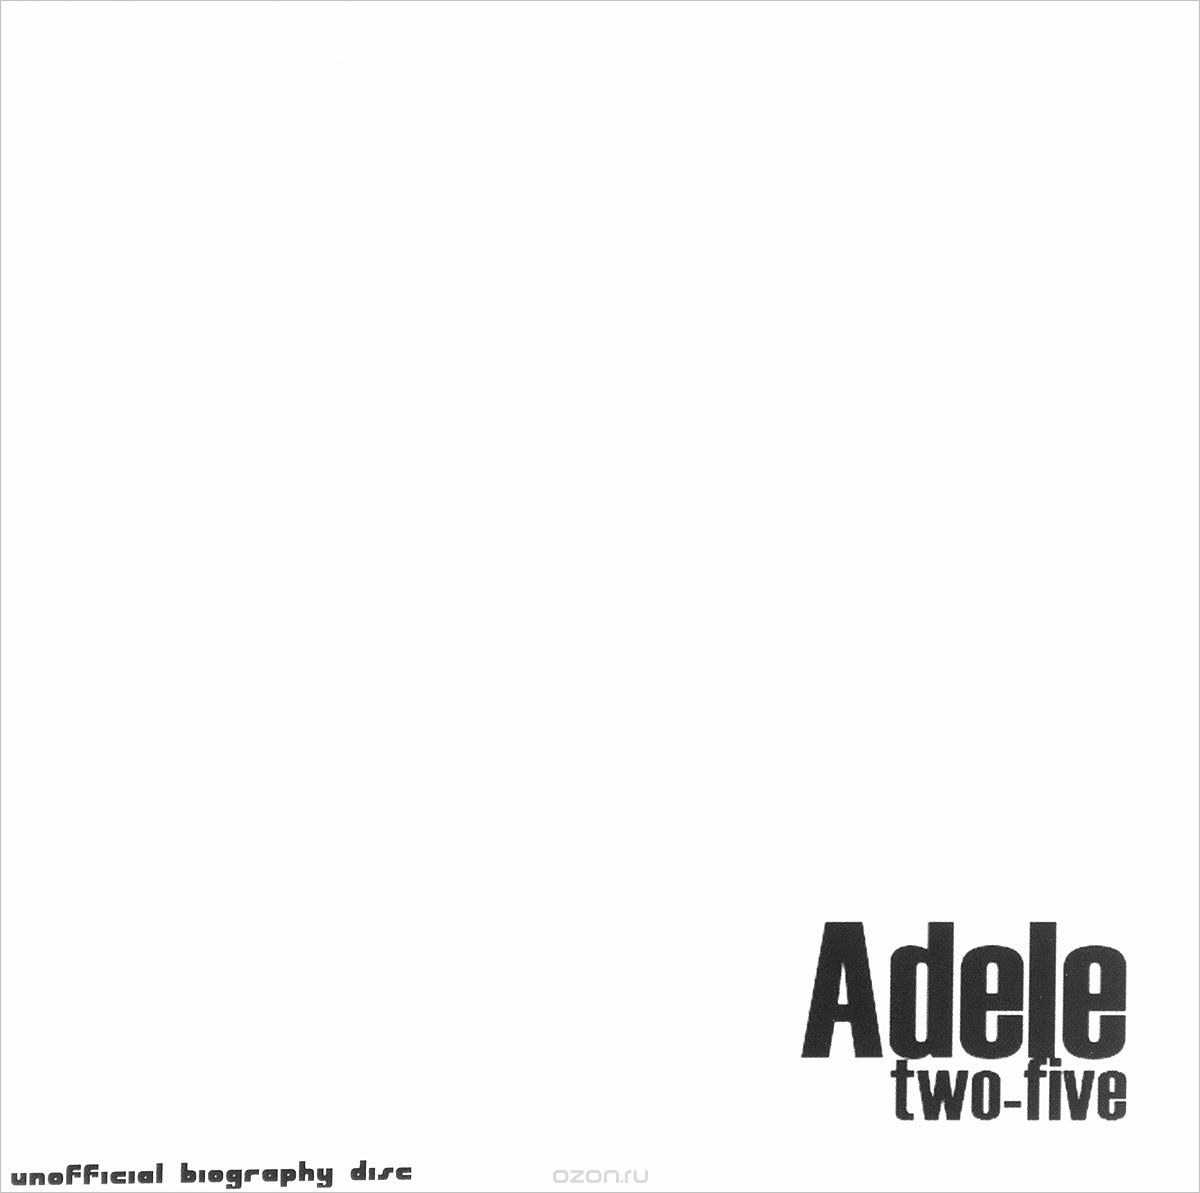 Adele. Two Five